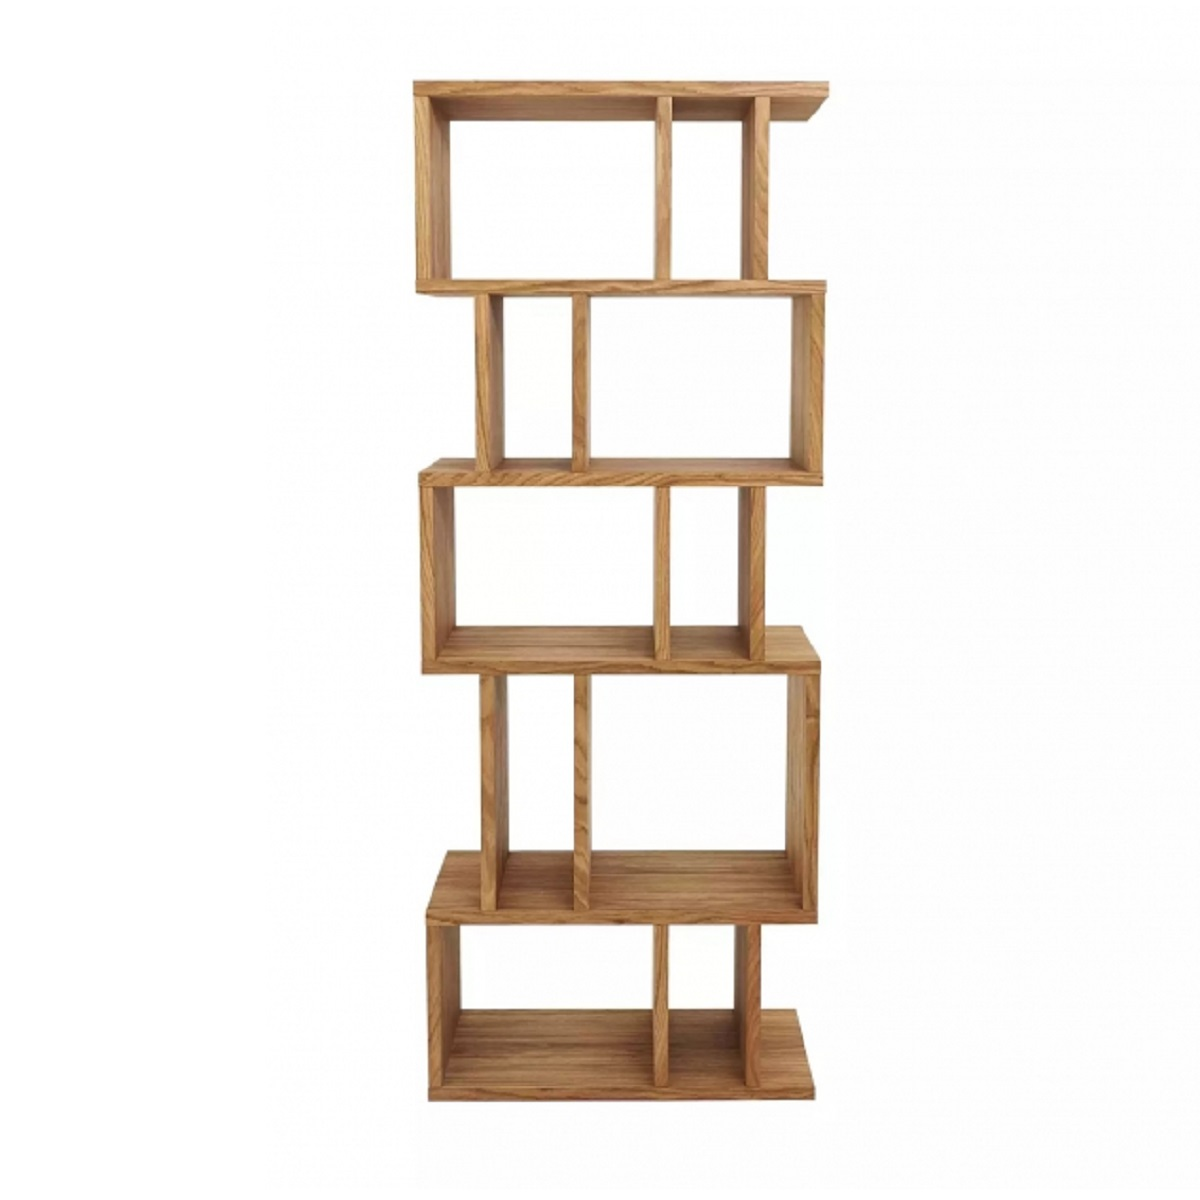 Darcy Alcove Shelving Unit